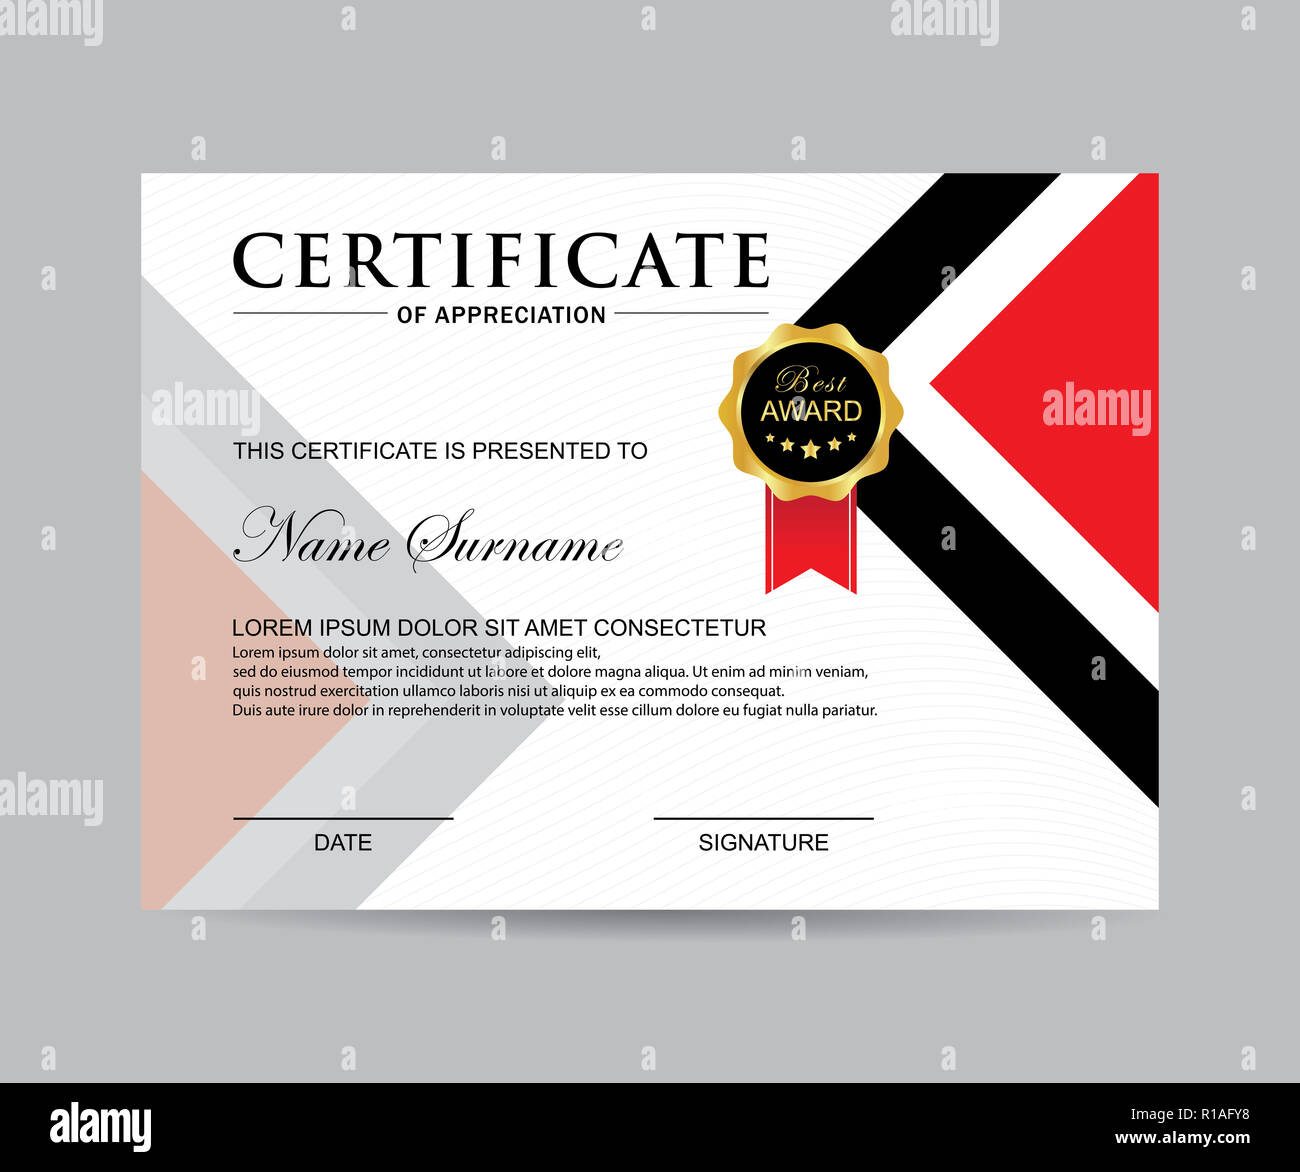 Modern Certificate Template And Background Stock Photo 224581484